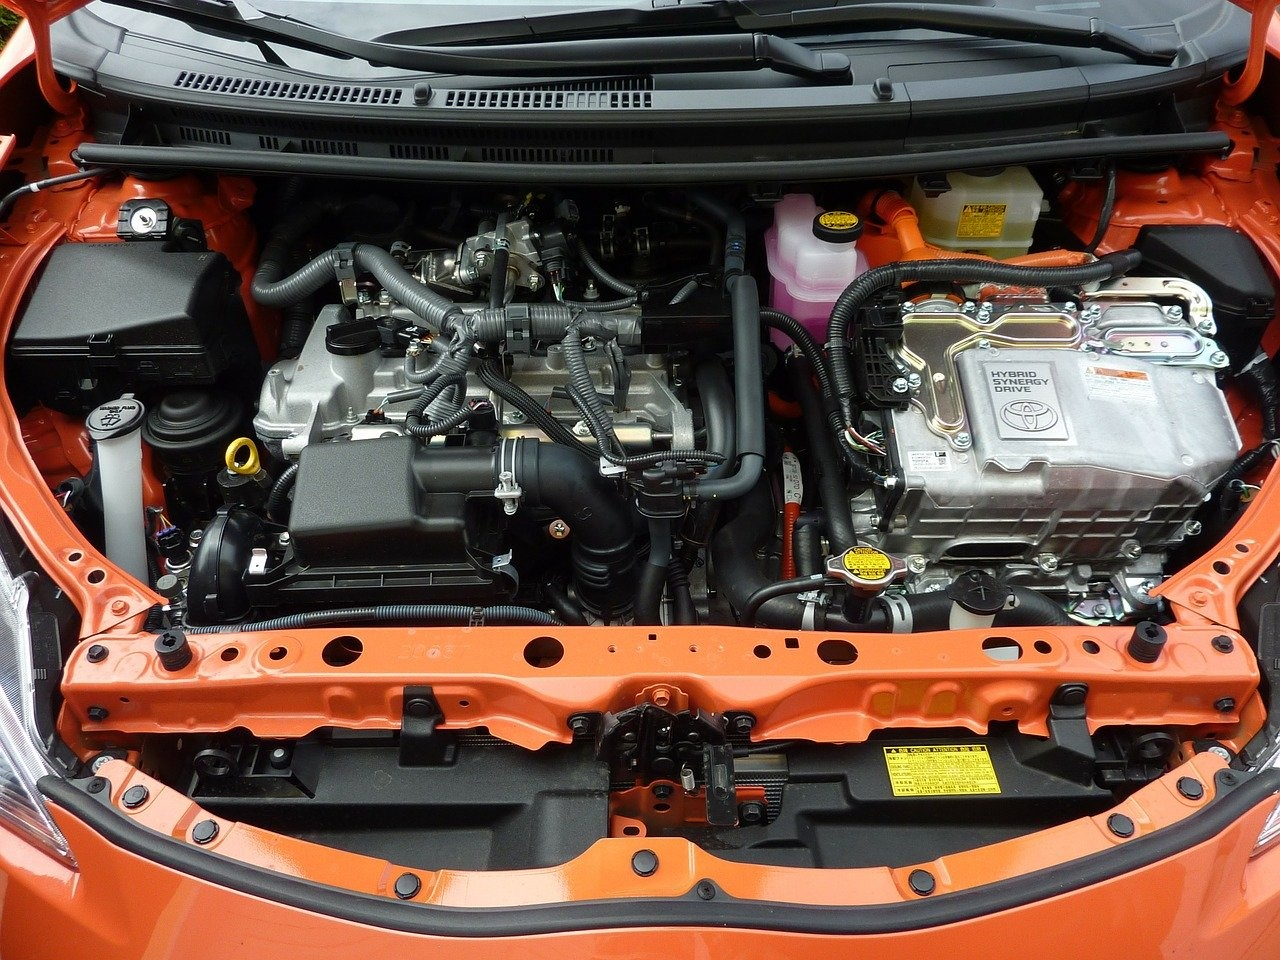 under the bonnet of an orange car